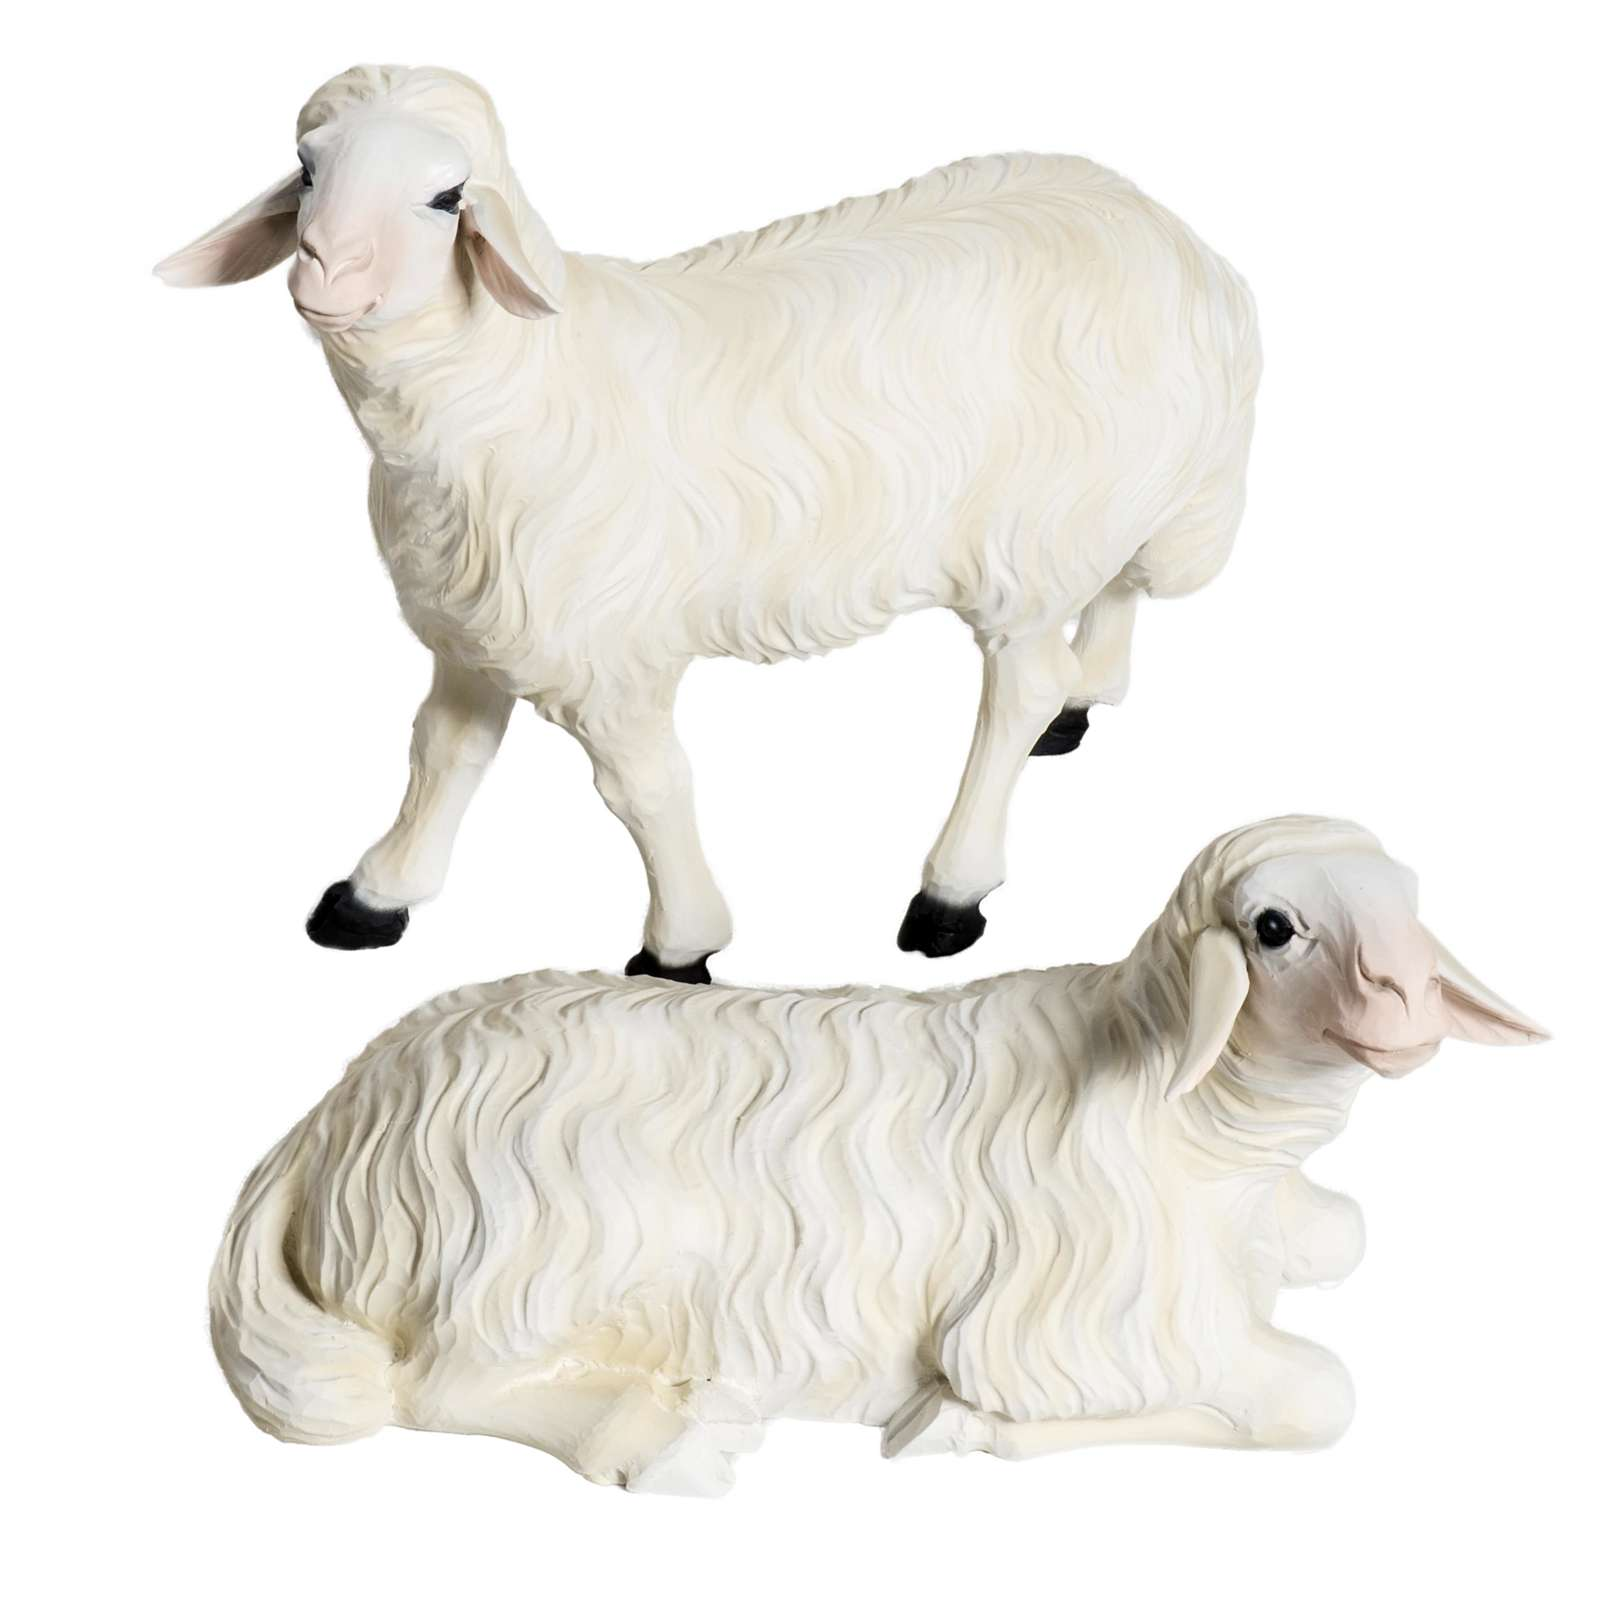 Sheep figurine Nativity Scene 60 cm 4